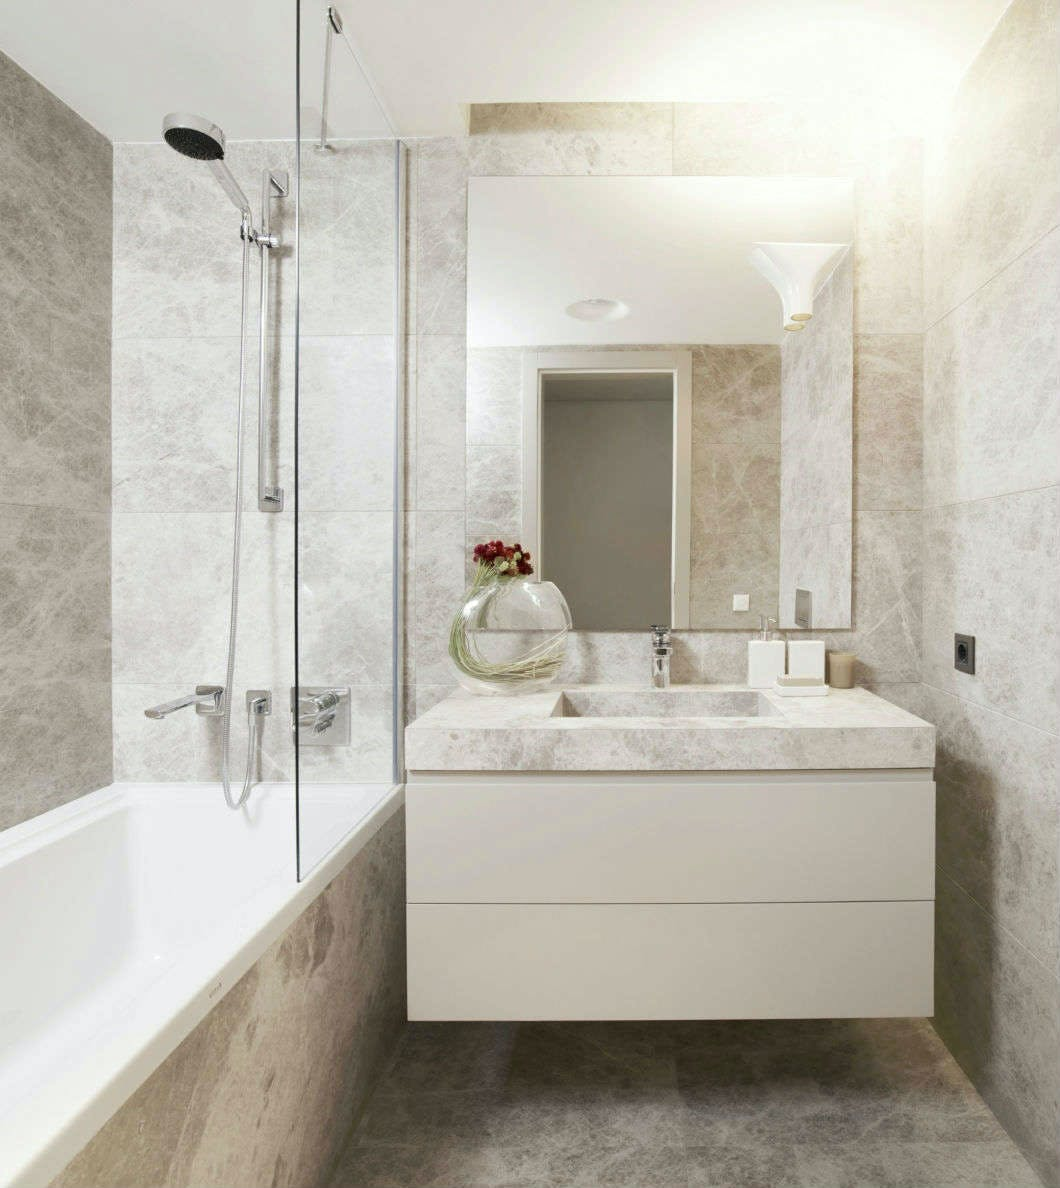 Small bathrooms, designed & installed by More Bathrooms.